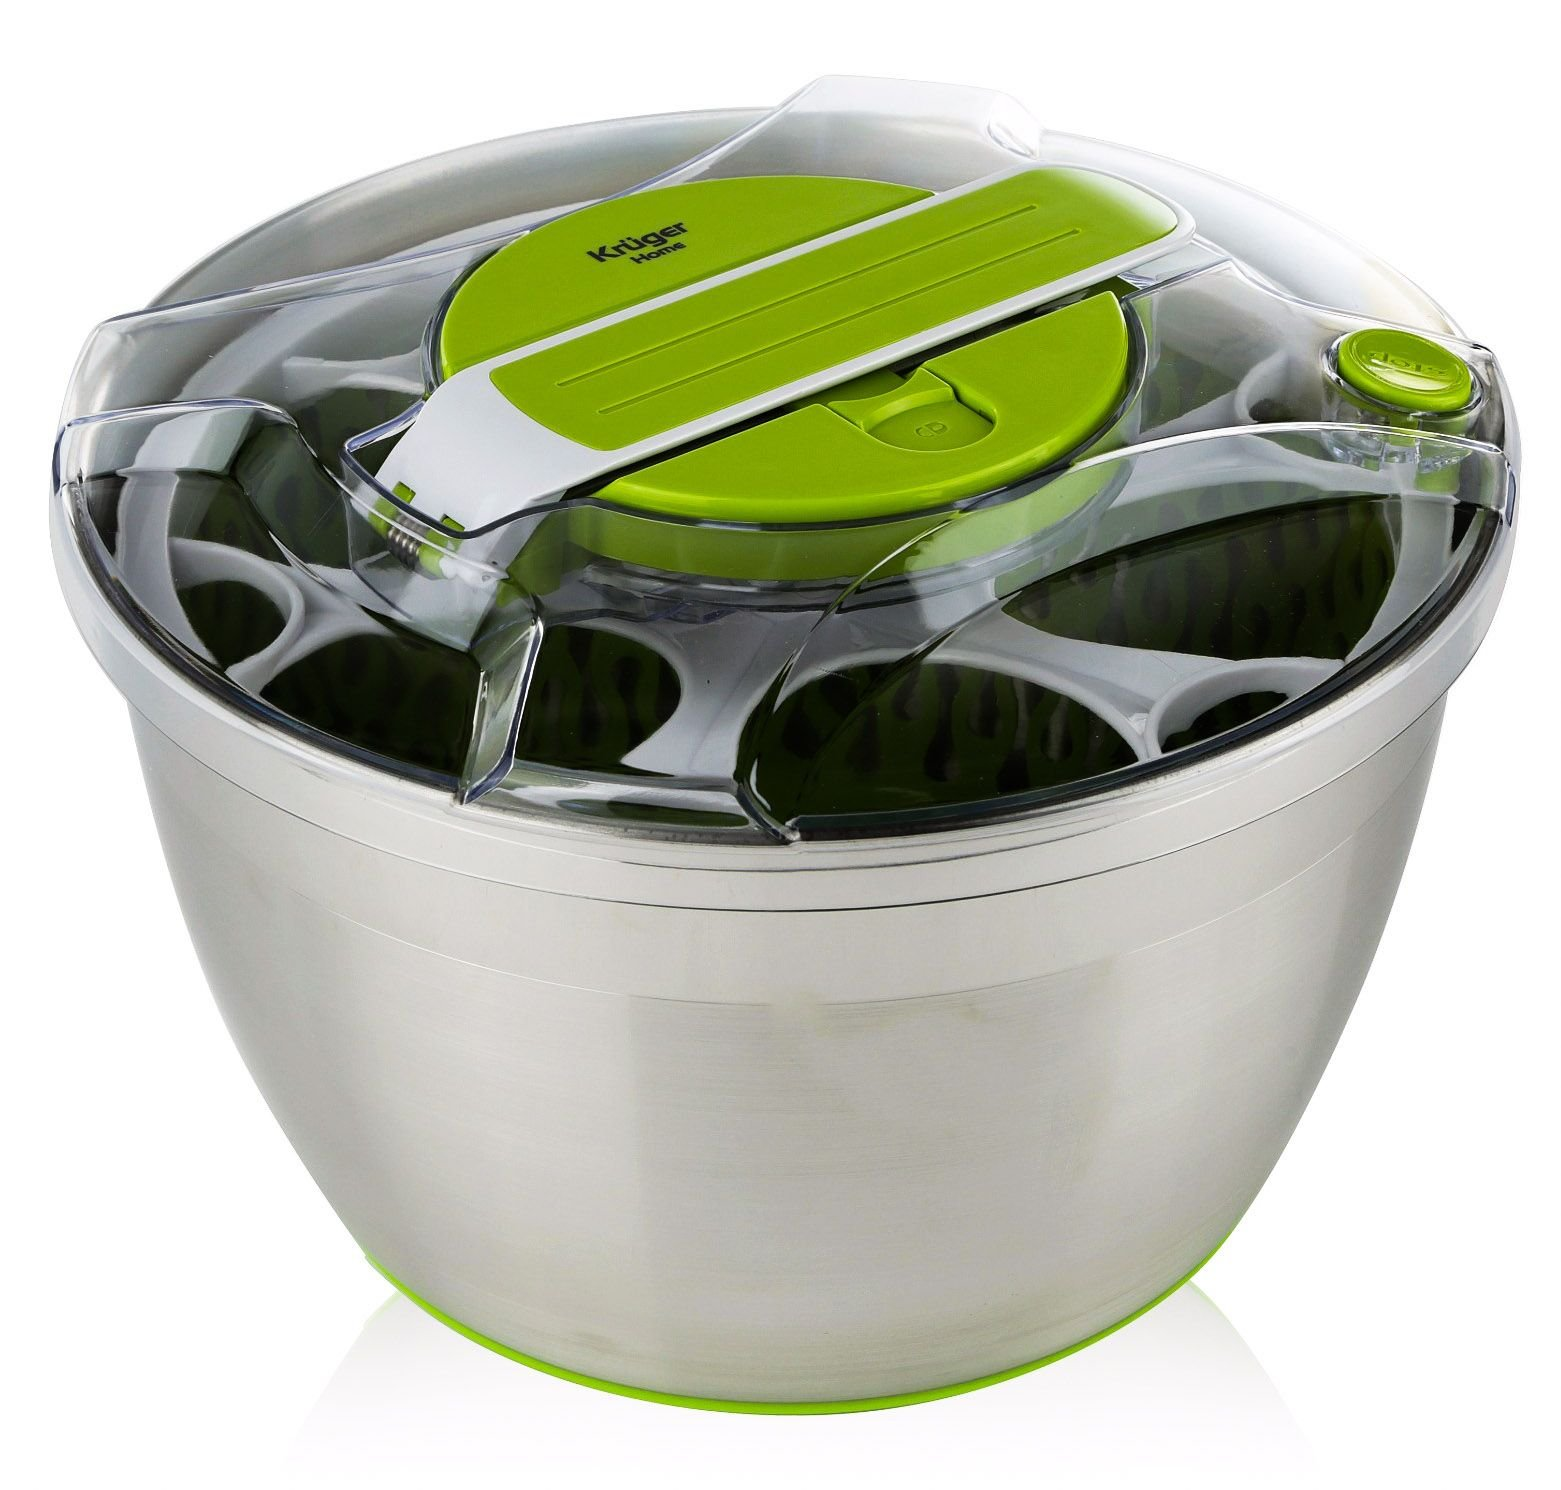 Large Stainless Steel Salad Spinner - with Lid and Plastic Colander, Push Down Lever, Non Slip Base, Dishwasher Safe, by Kruger Home by Kruger Home